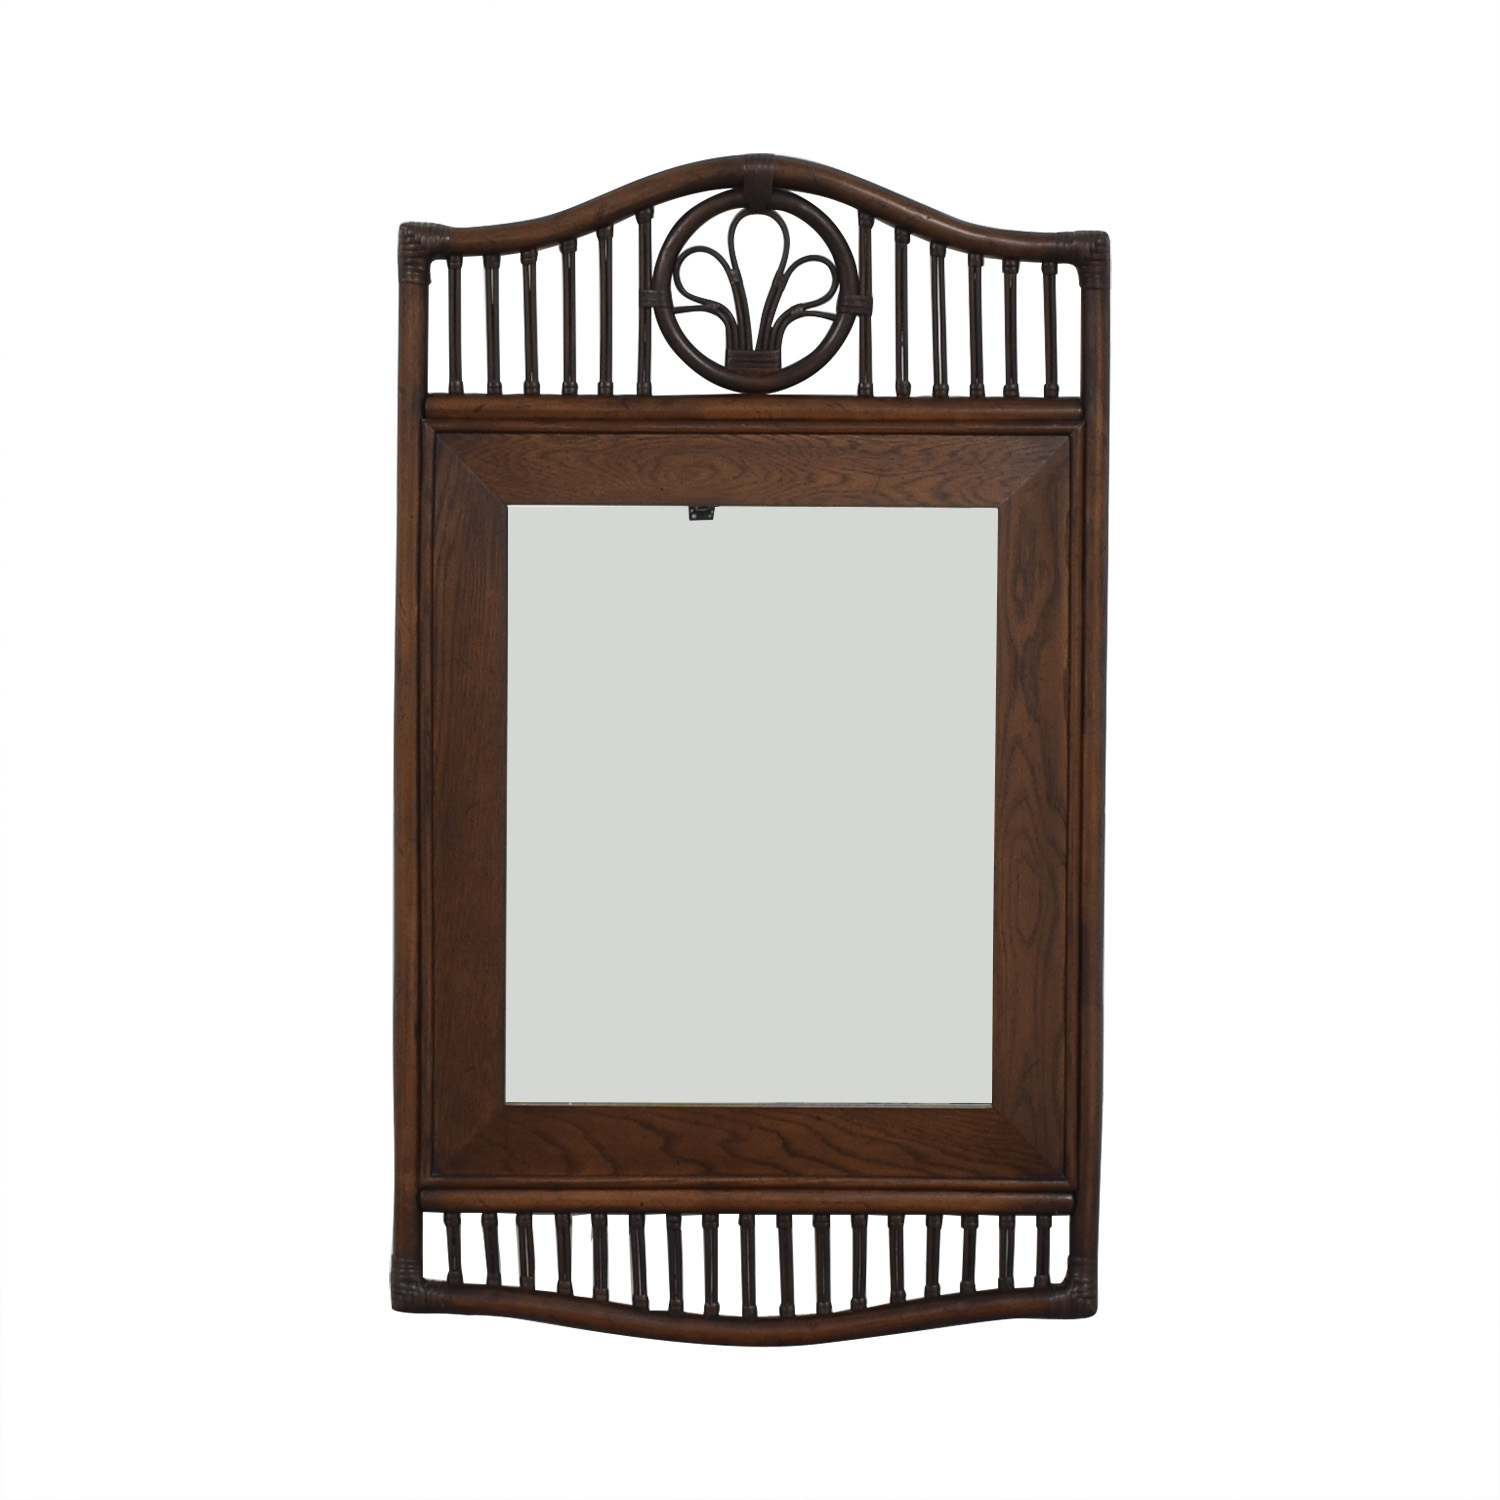 Ficks Reed Ficks Reed Rattan Wall Mirror for sale